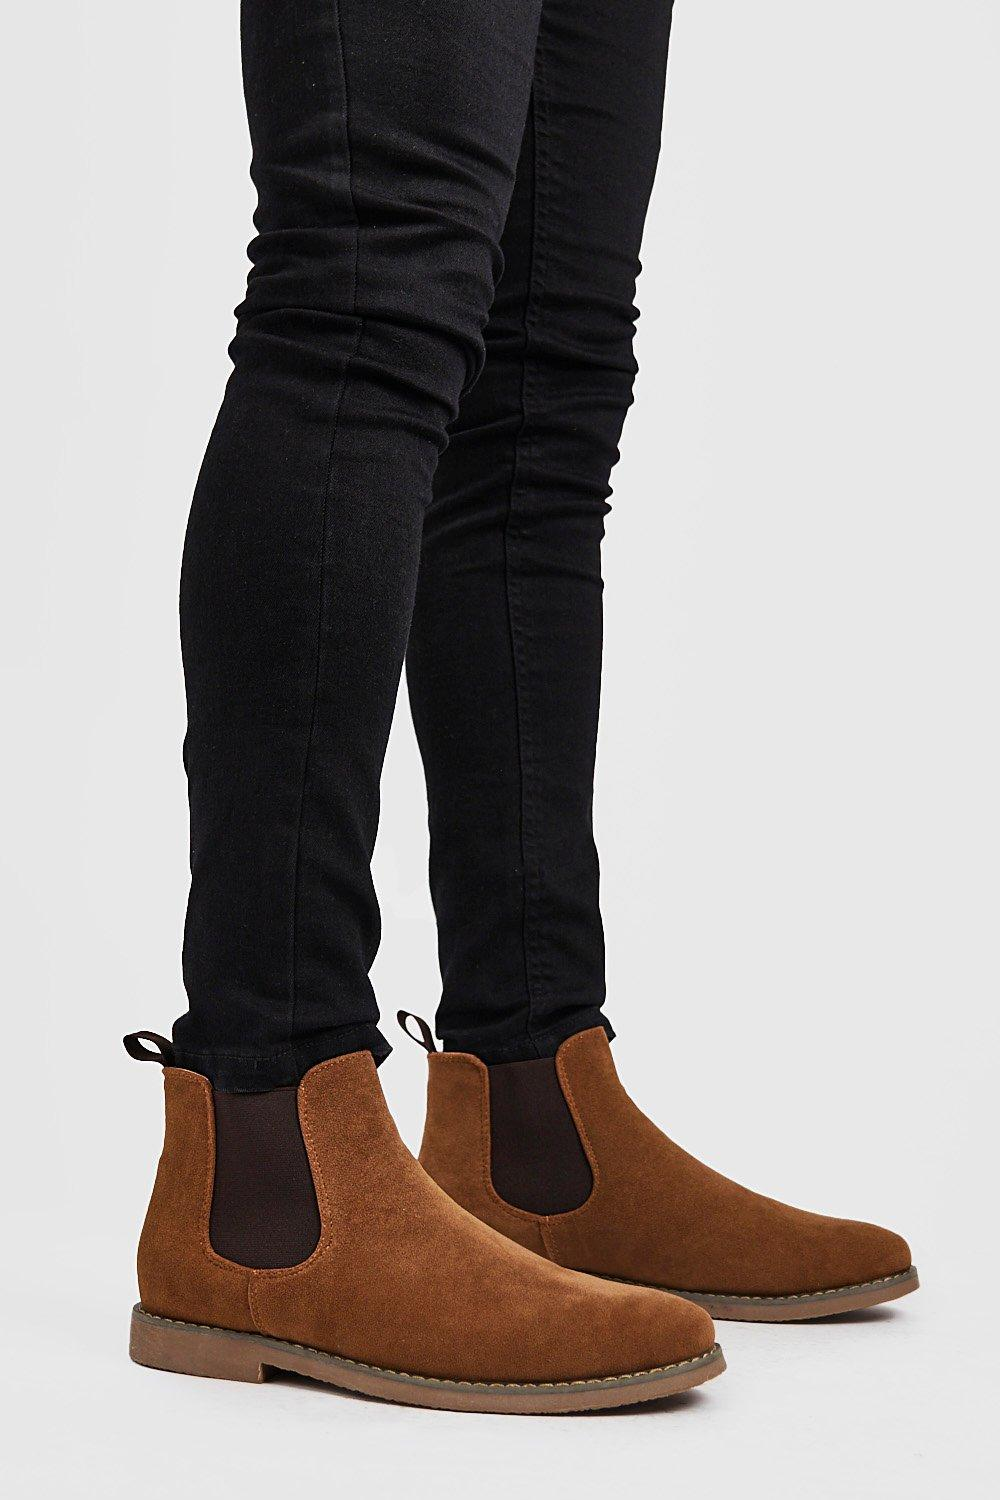 mens faux suede chelsea boots - brown